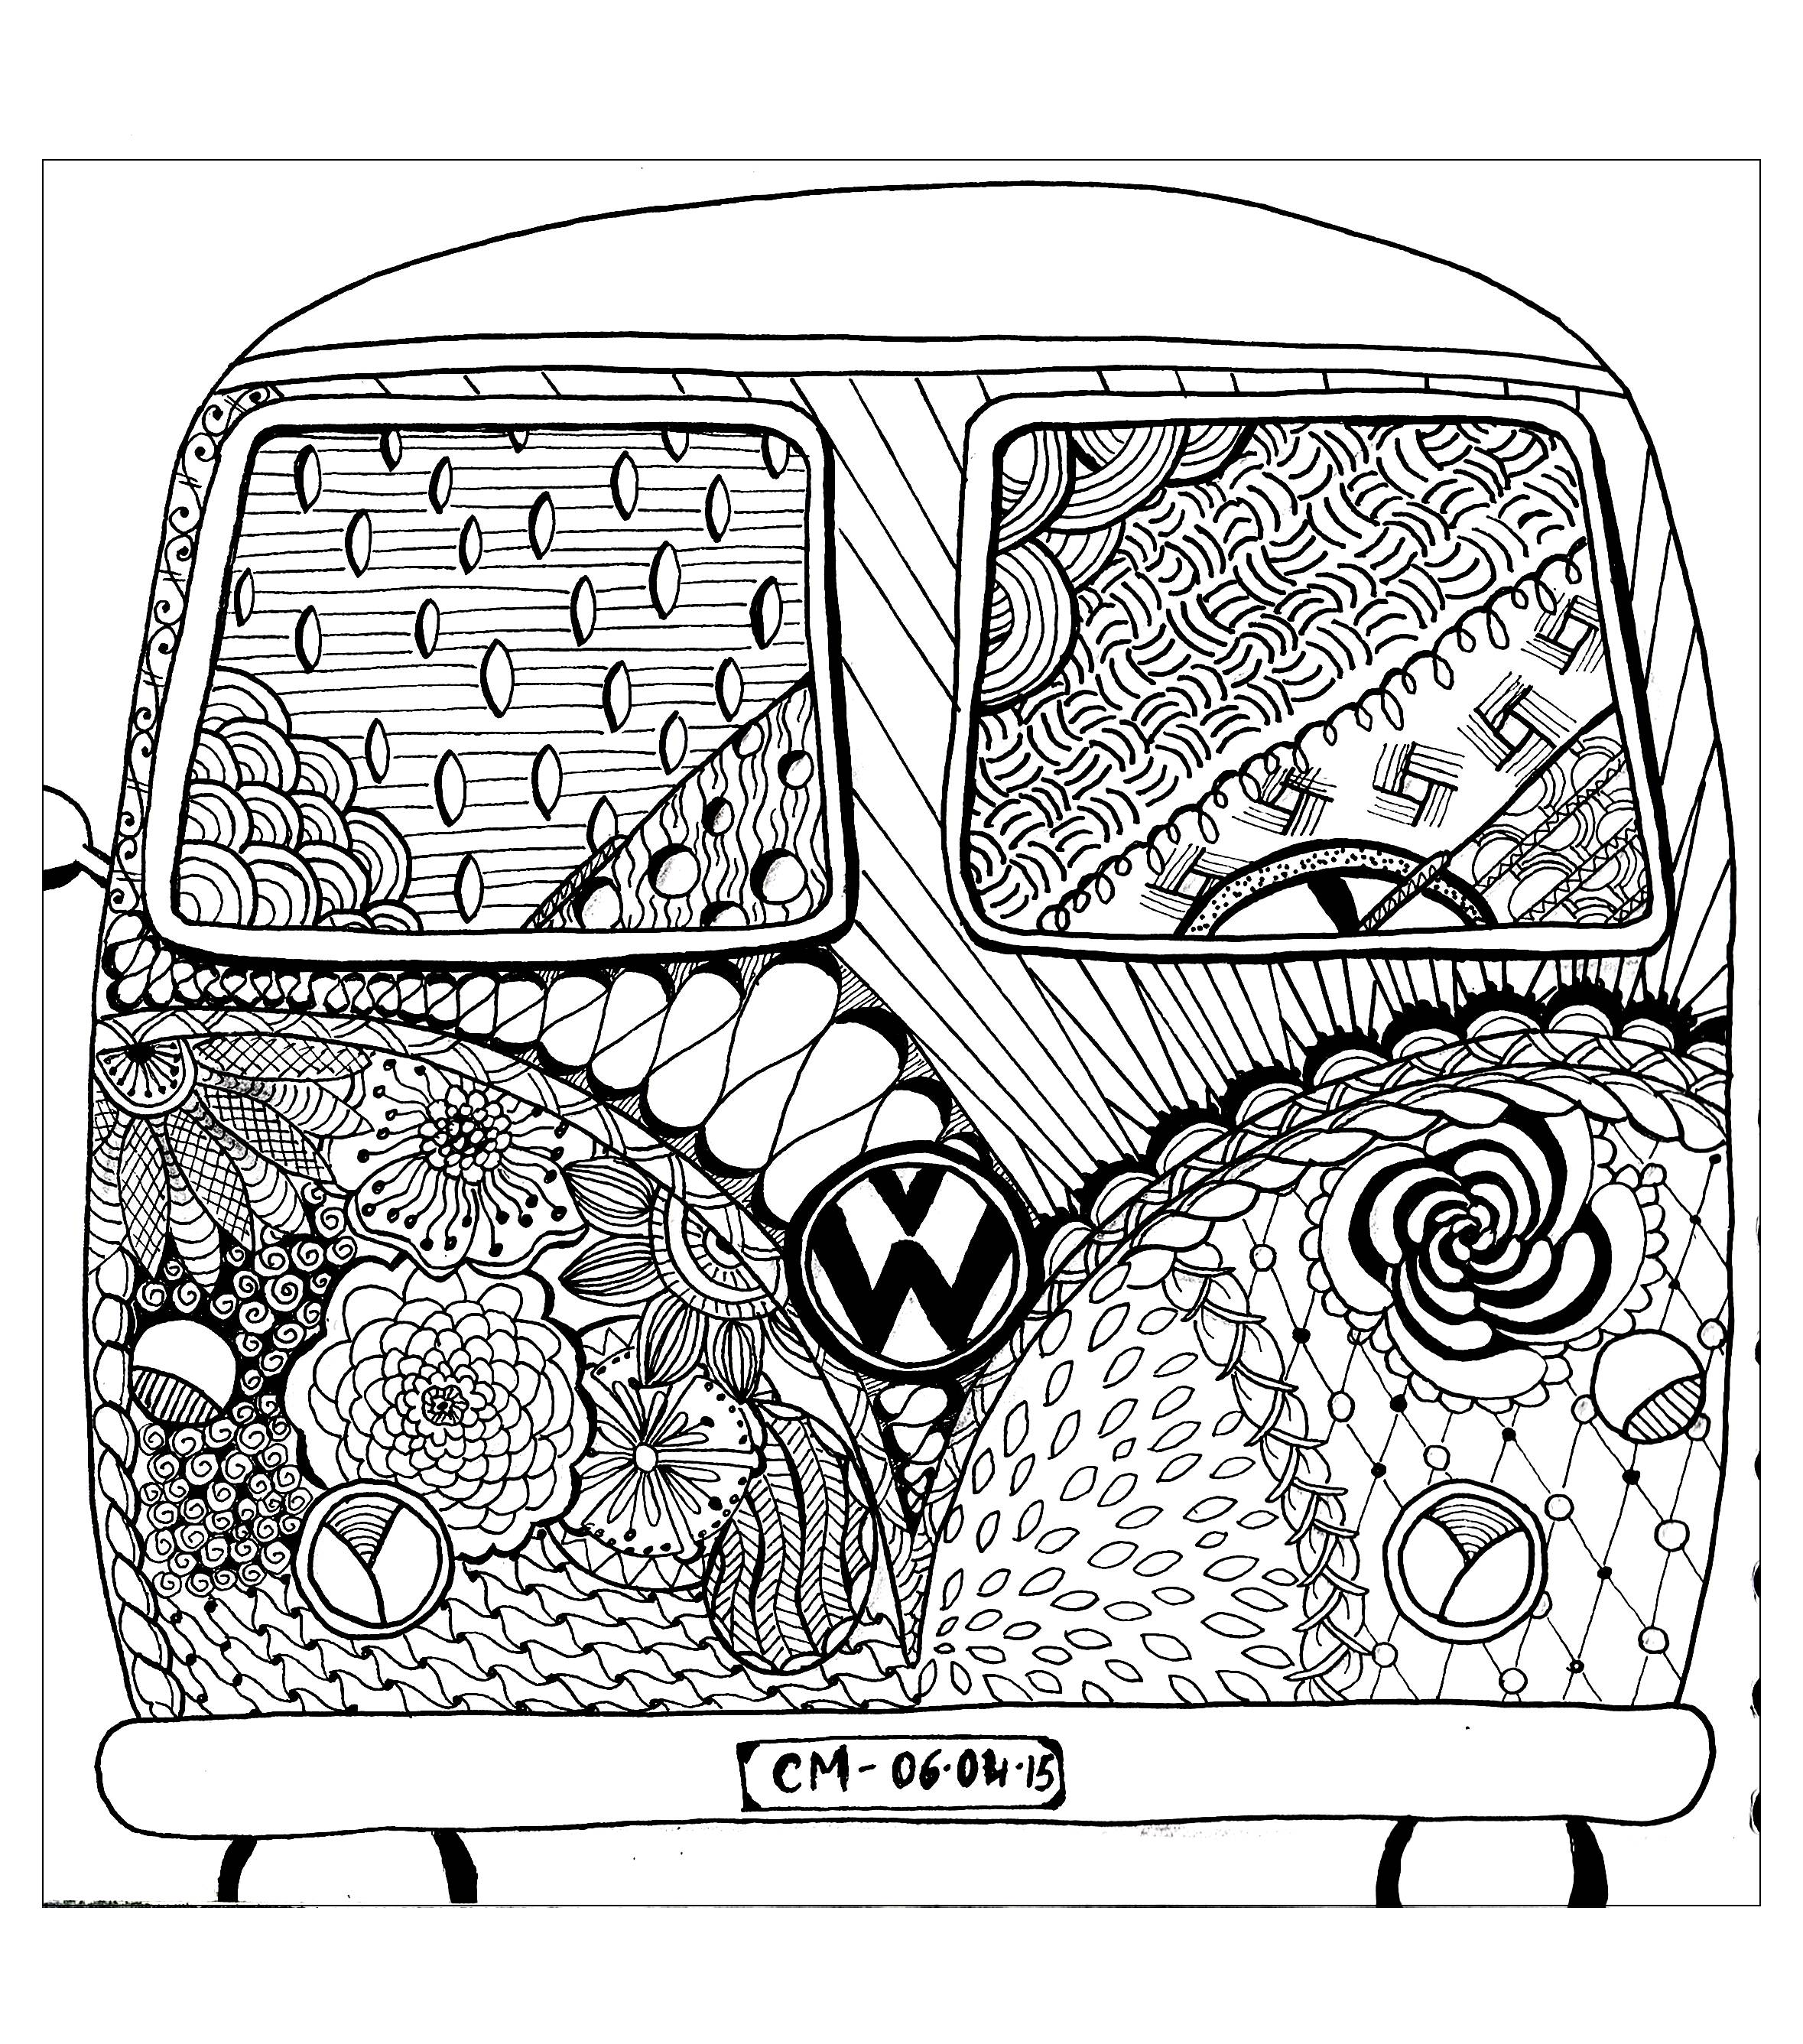 free printable coloring pages for adults zen :  Hippie Camper Exclusive Coloring Page See The Original Work Image With Print